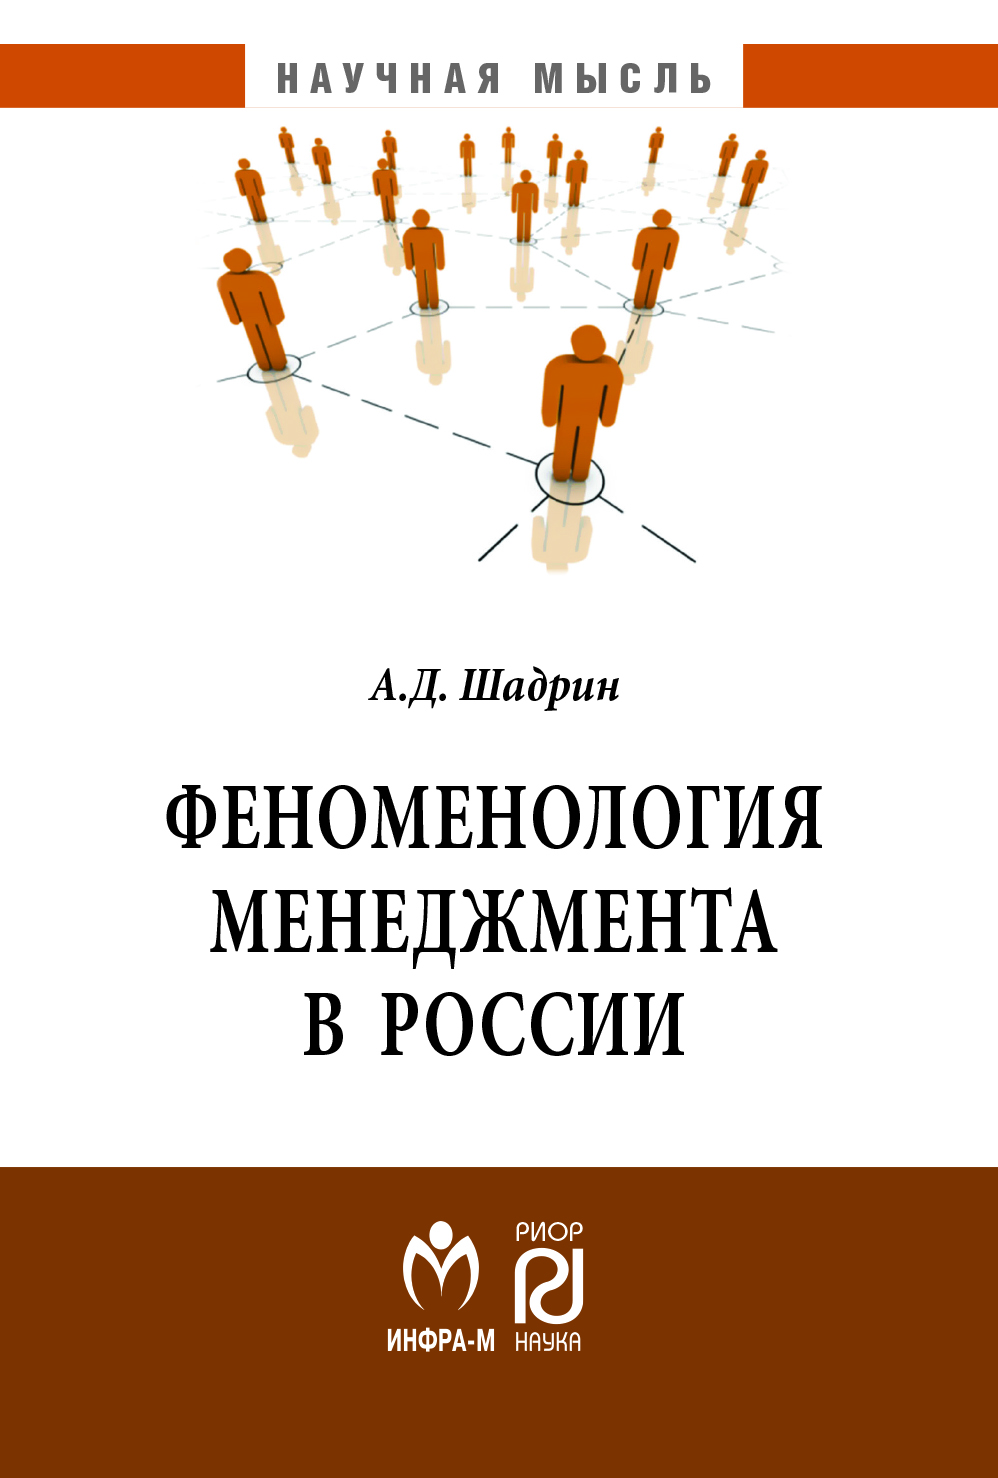 Phenomenology of management in Russia